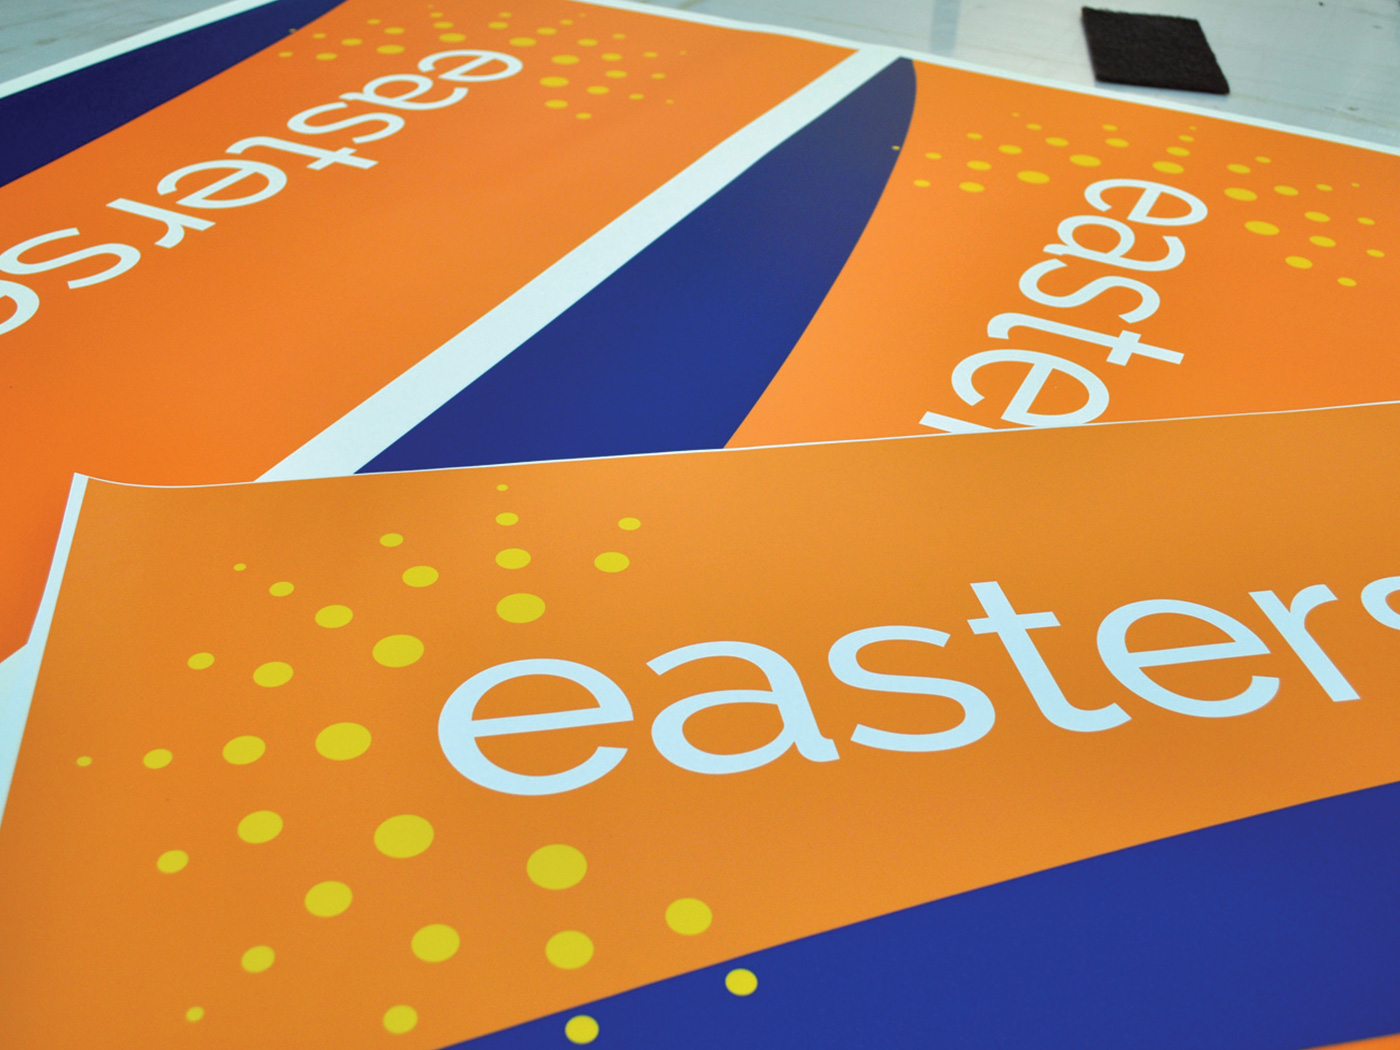 Easterseals brand identity